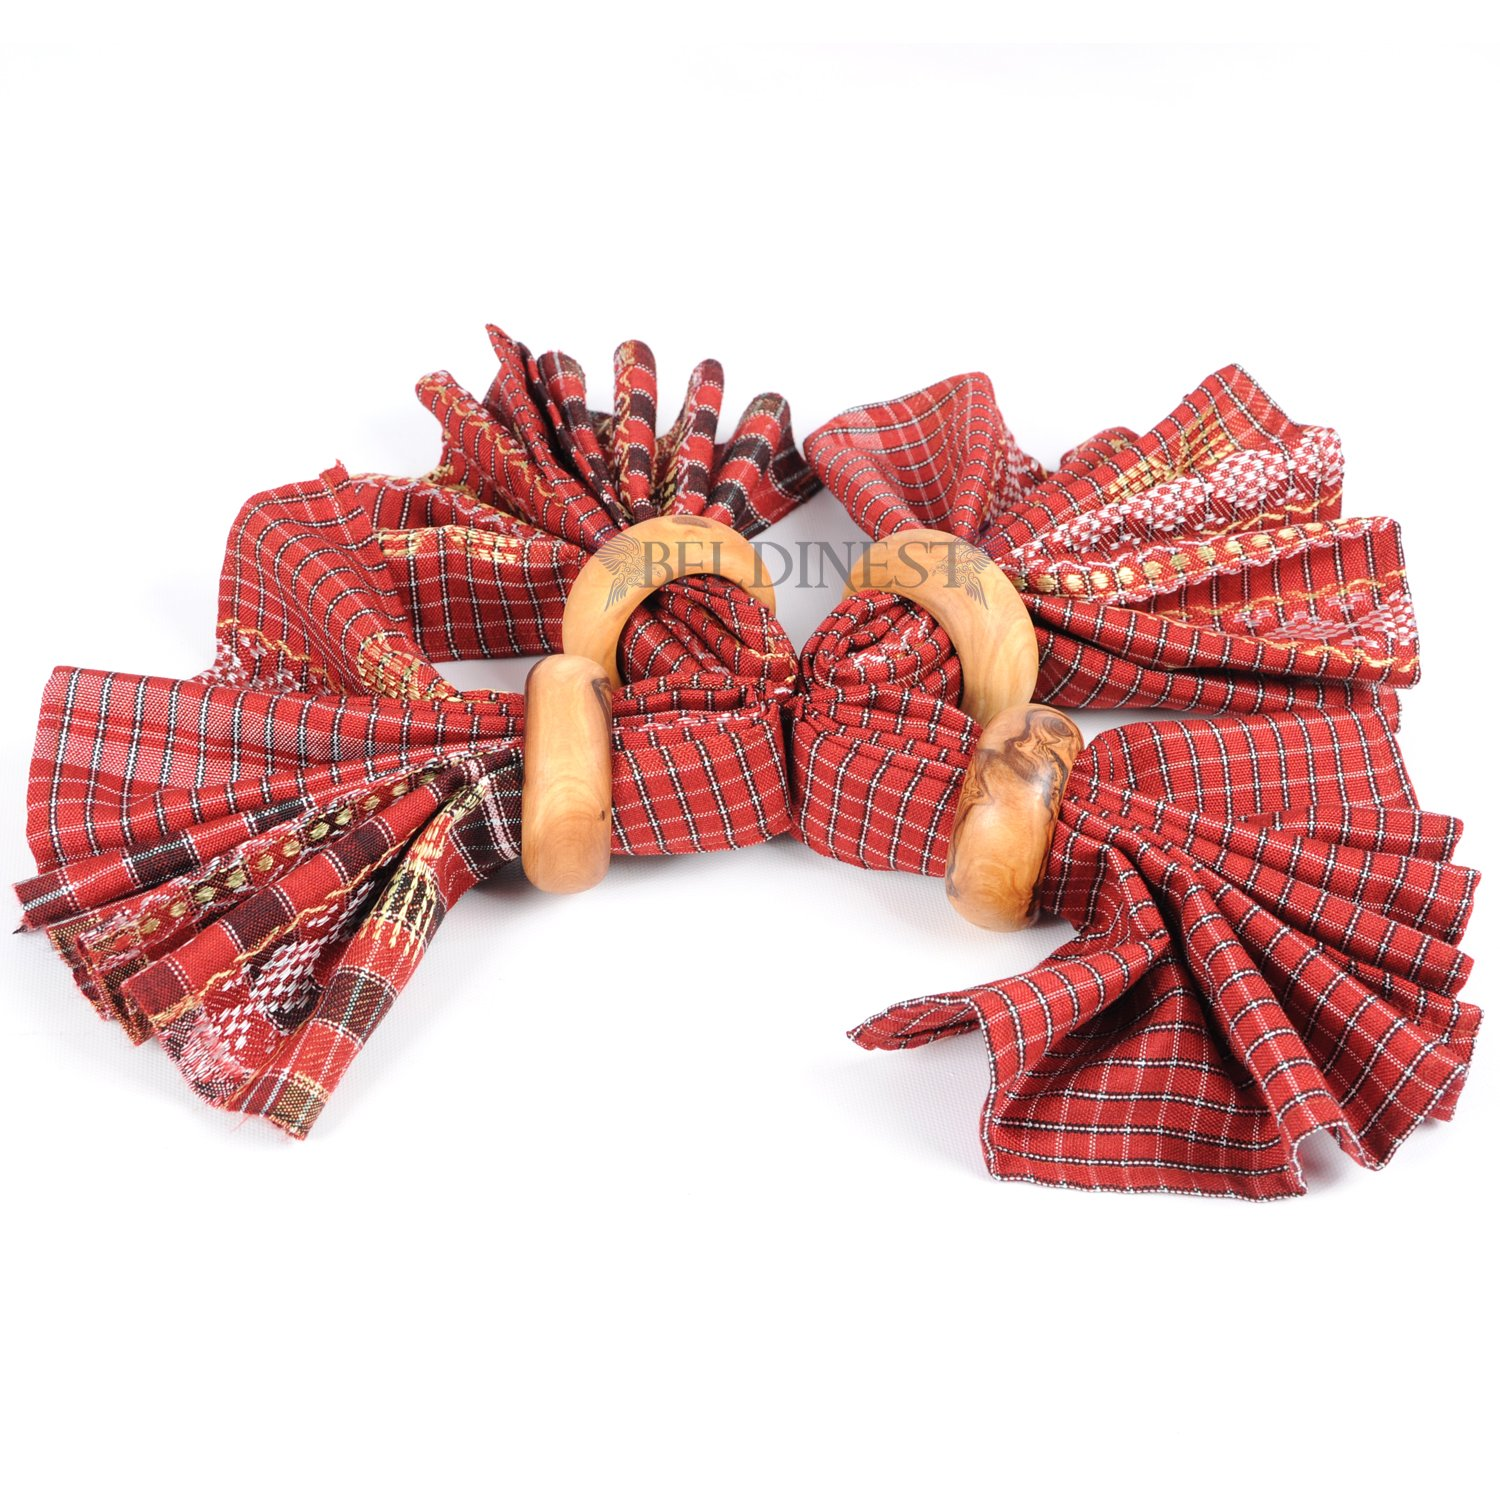 4 Napkin Rings Handcrafted From Olive Wood Set of 4 Wooden Napkin Ring Makes a Unique Gift by BeldiNest (Image #2)